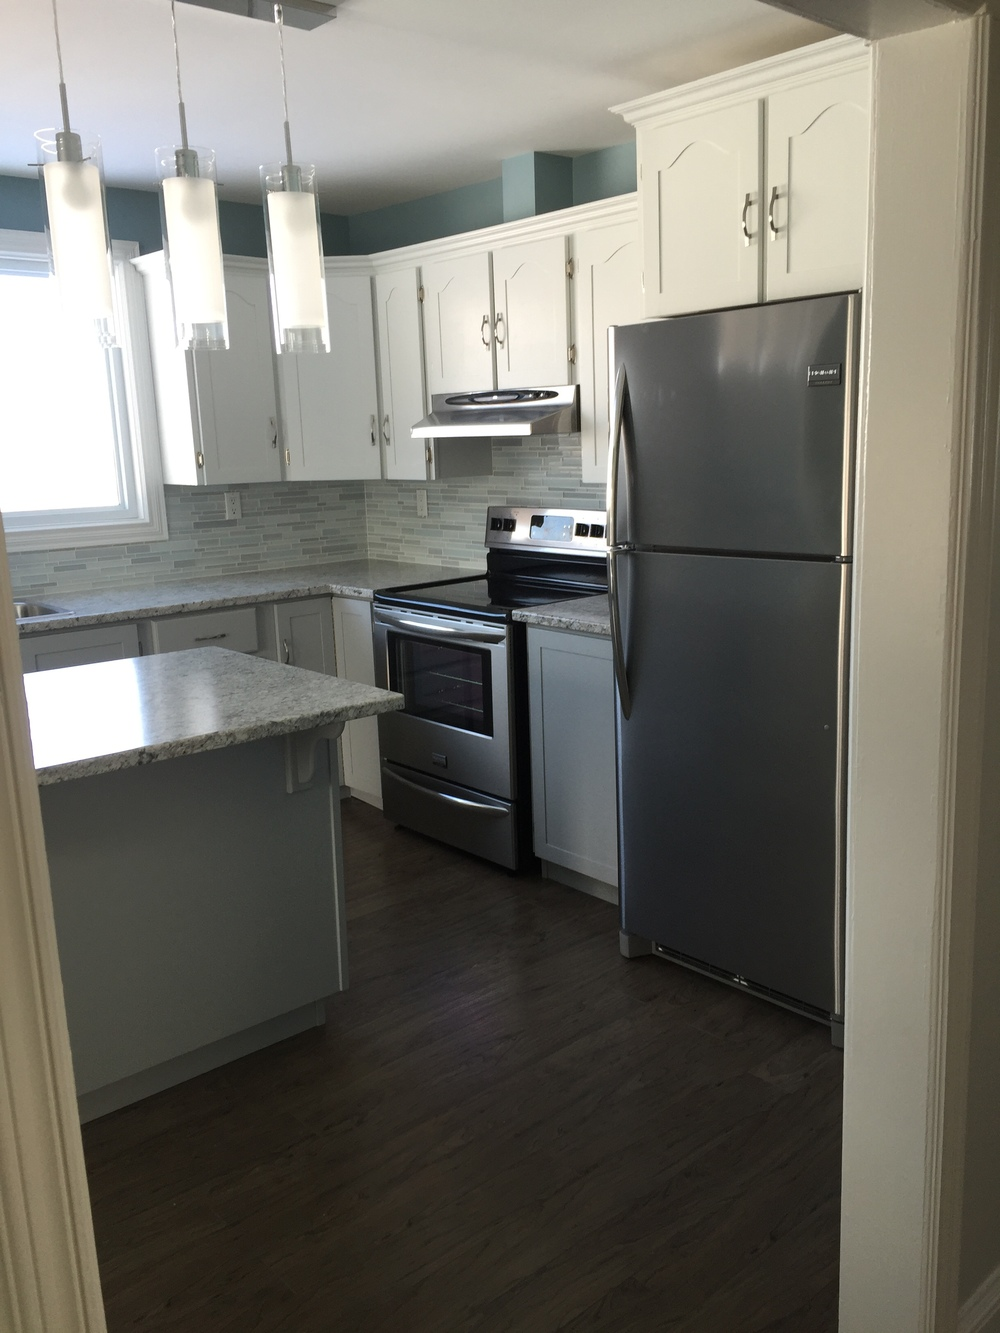 New stainless steel appliances and a glass backsplash provide beautiful finishes.